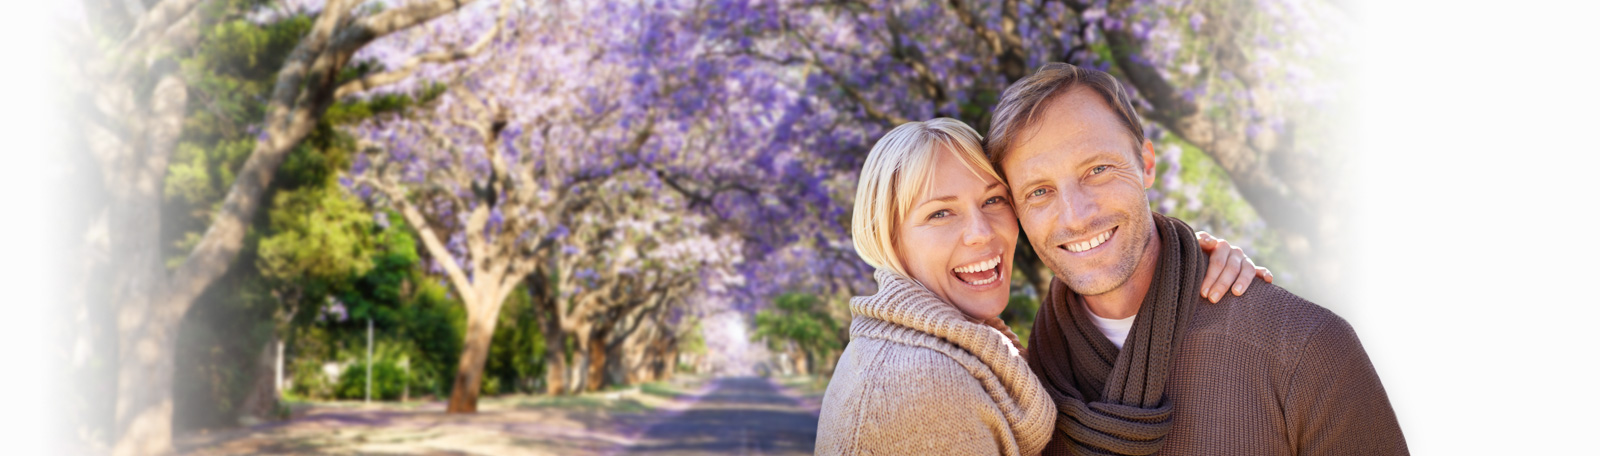 couple in front of jacaranda plant